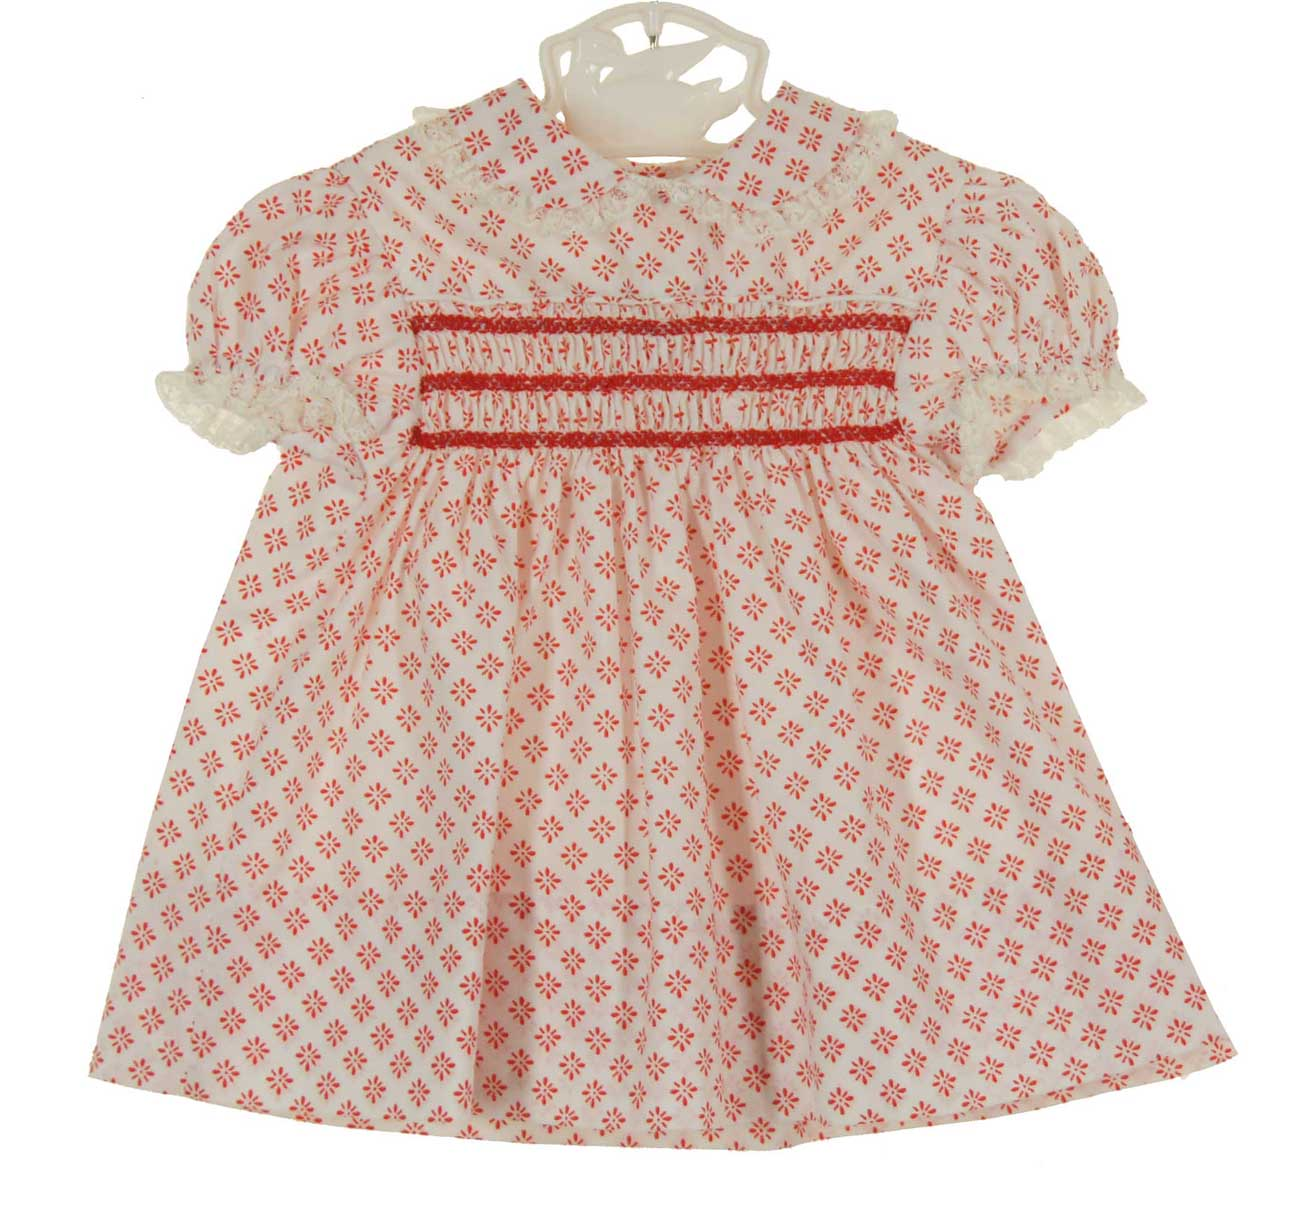 75bae3cdd3db vintage 1960s Polly Flinders red and white print smocked baby dress ...